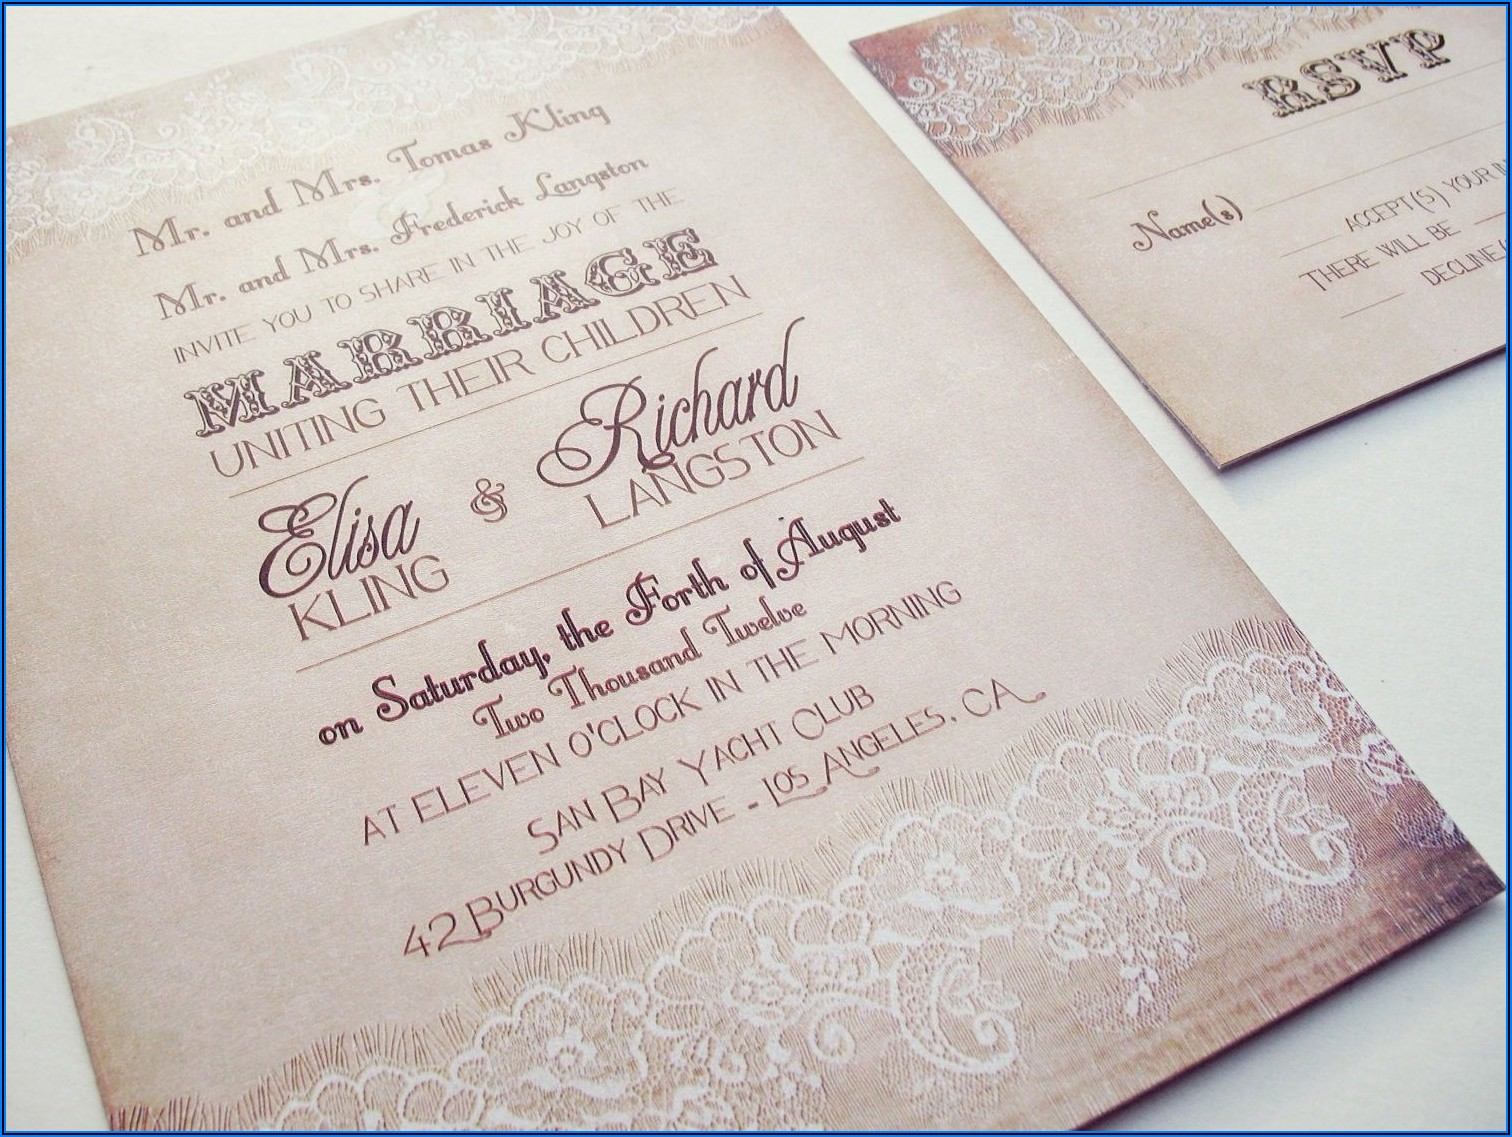 Staples Canada Printing Wedding Invitations